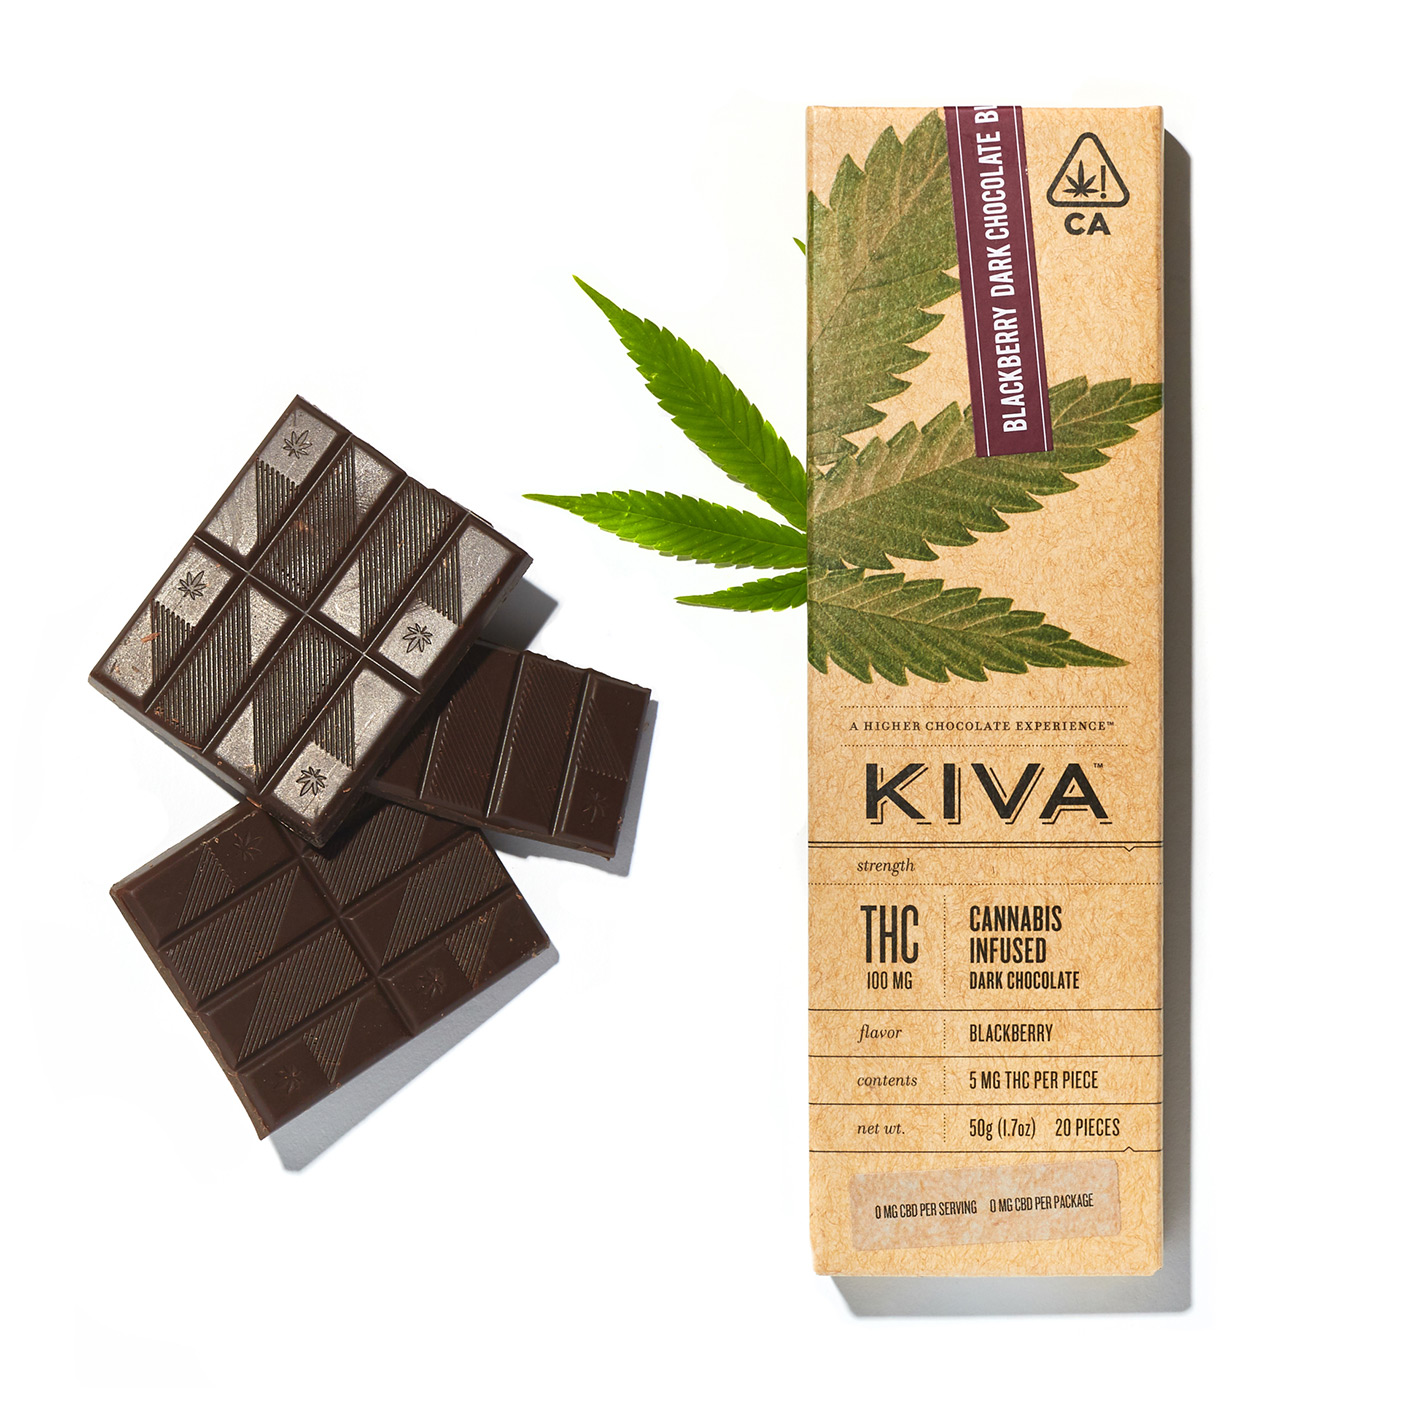 Kiva_Blackberry_Dark_Chocolate_1470.jpg